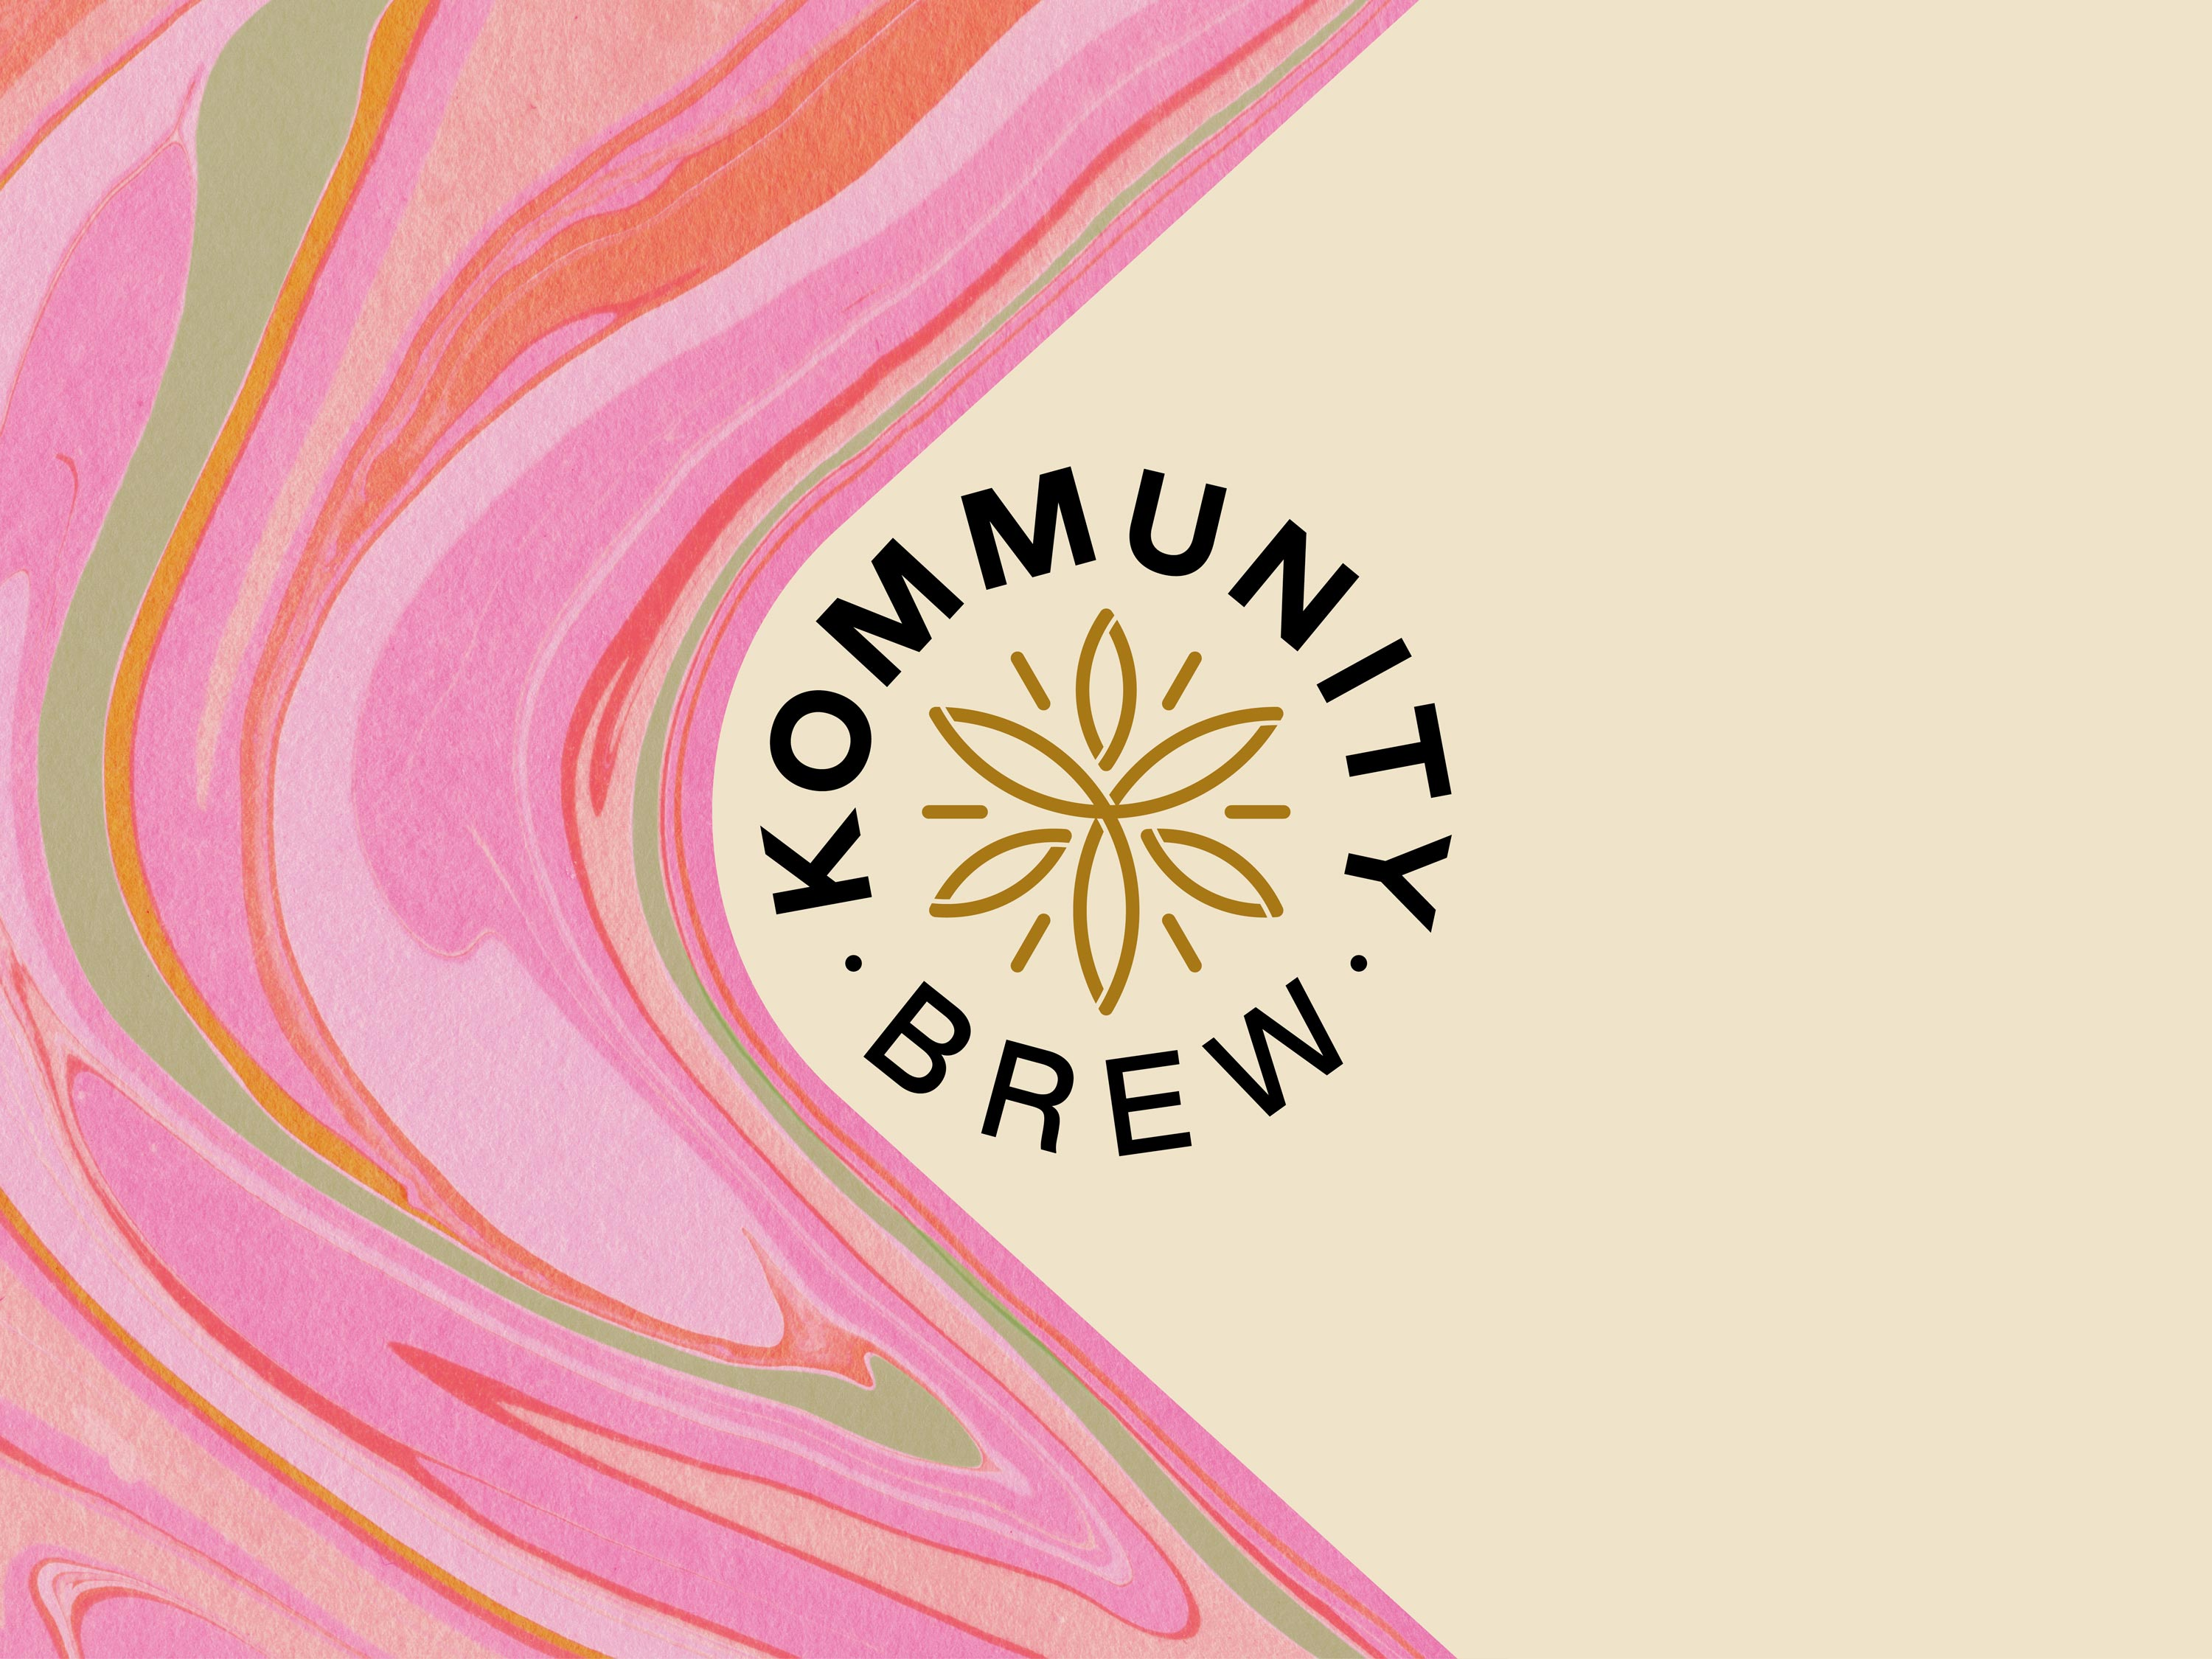 Kommunity Brew's Brand Identity and Packaging Design By Block